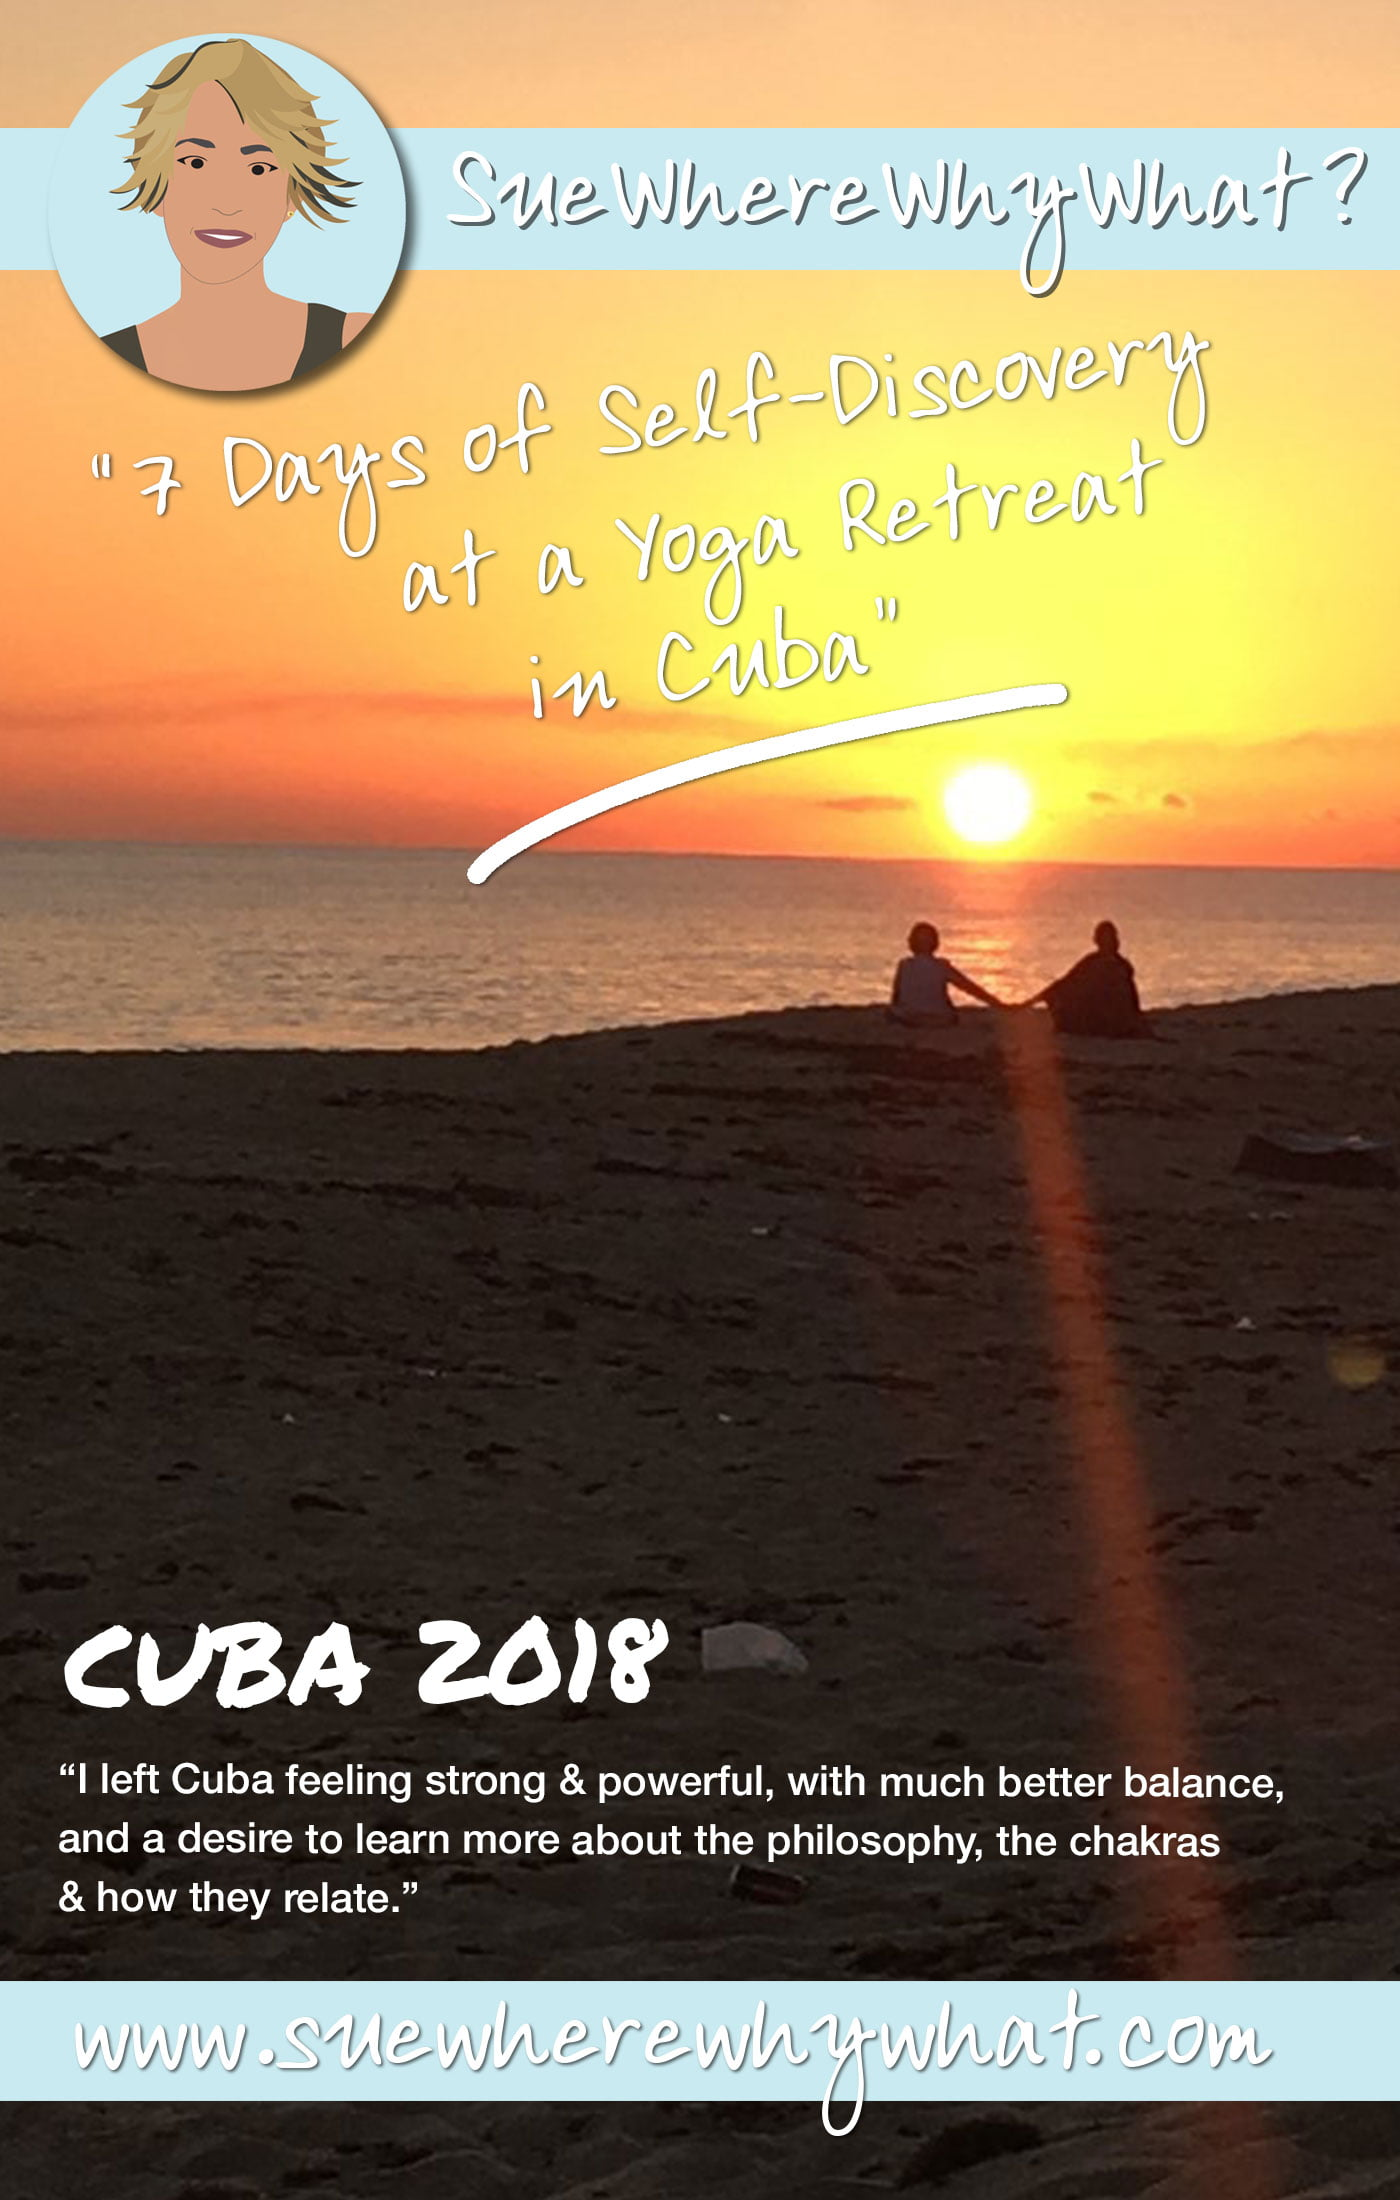 7 Days of Self-Discovery at a Yoga Retreat in Cuba (Part 1)